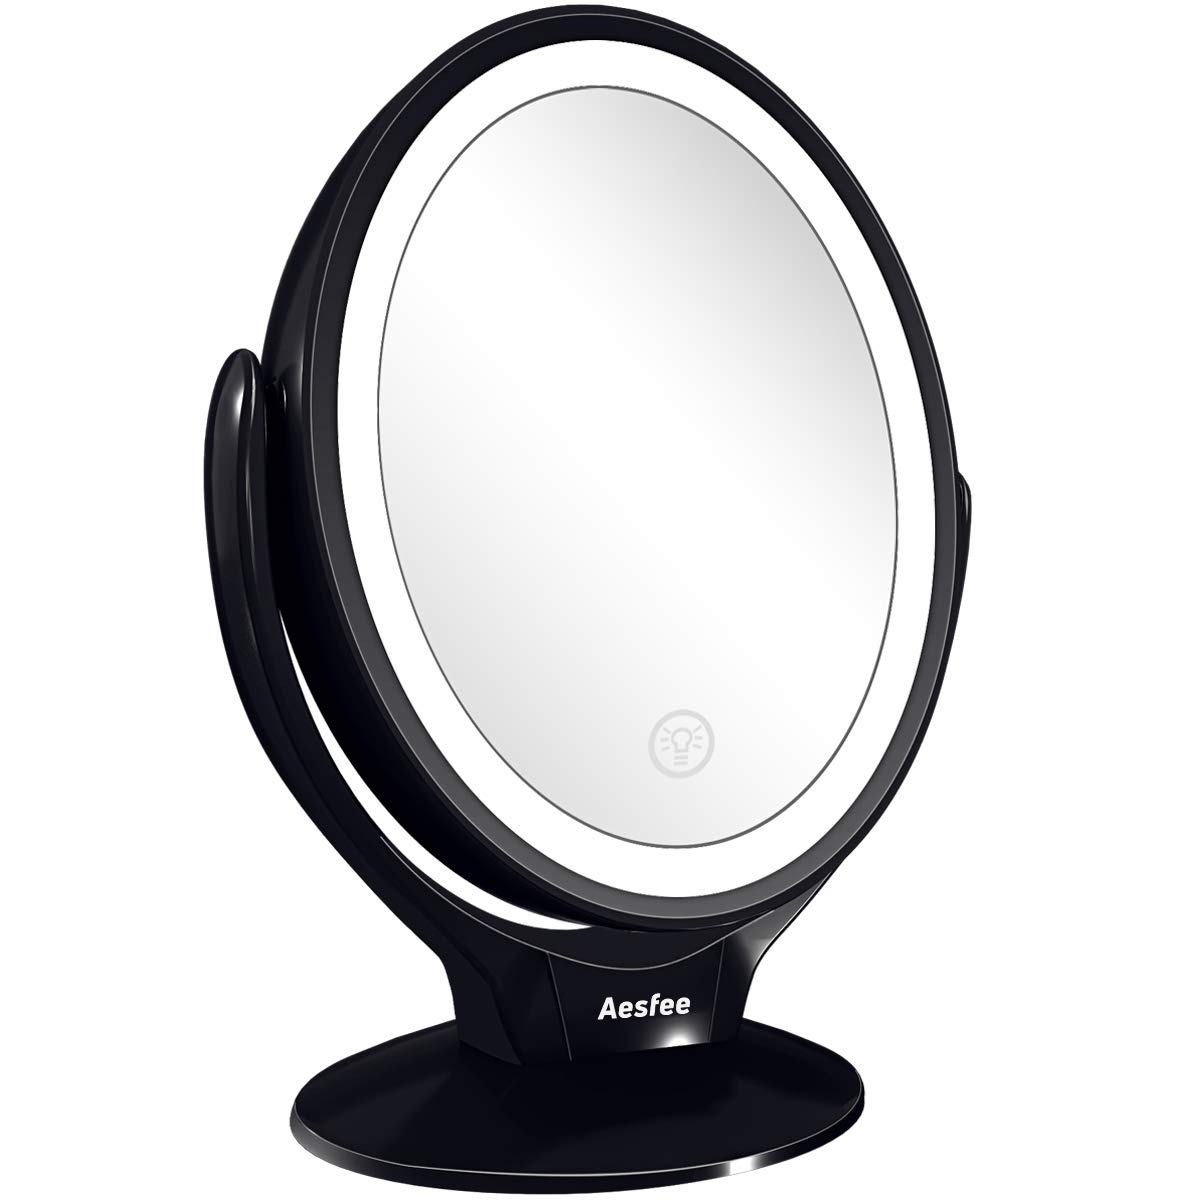 Aesfee LED Lighted Makeup Vanity Mirror Rechargeable,1x/7x Magnification Double Sided 360 Degree Swivel Magnifying Mirror with Dimmable Touch Screen, Portable Tabletop Illuminated Mirrors - Black